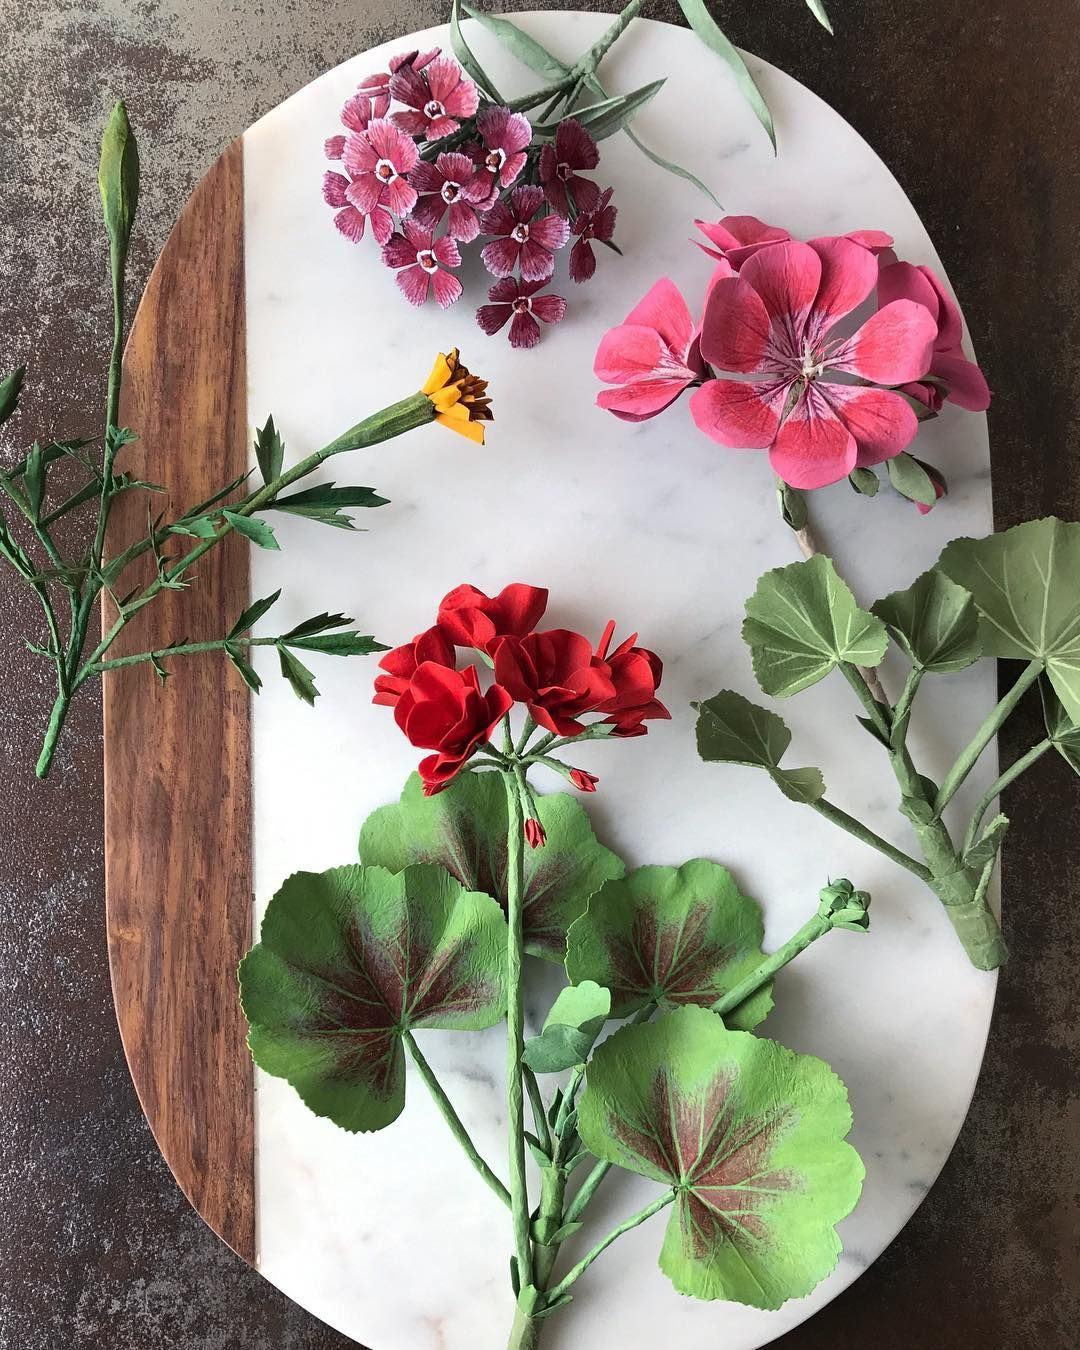 2 359 Likes 125 Comments Ann Wood And Dean Lucker Woodlucker On Instagram A New Paper Red Geranium Added To This Grouping Of Paper Garden Flowers Arte